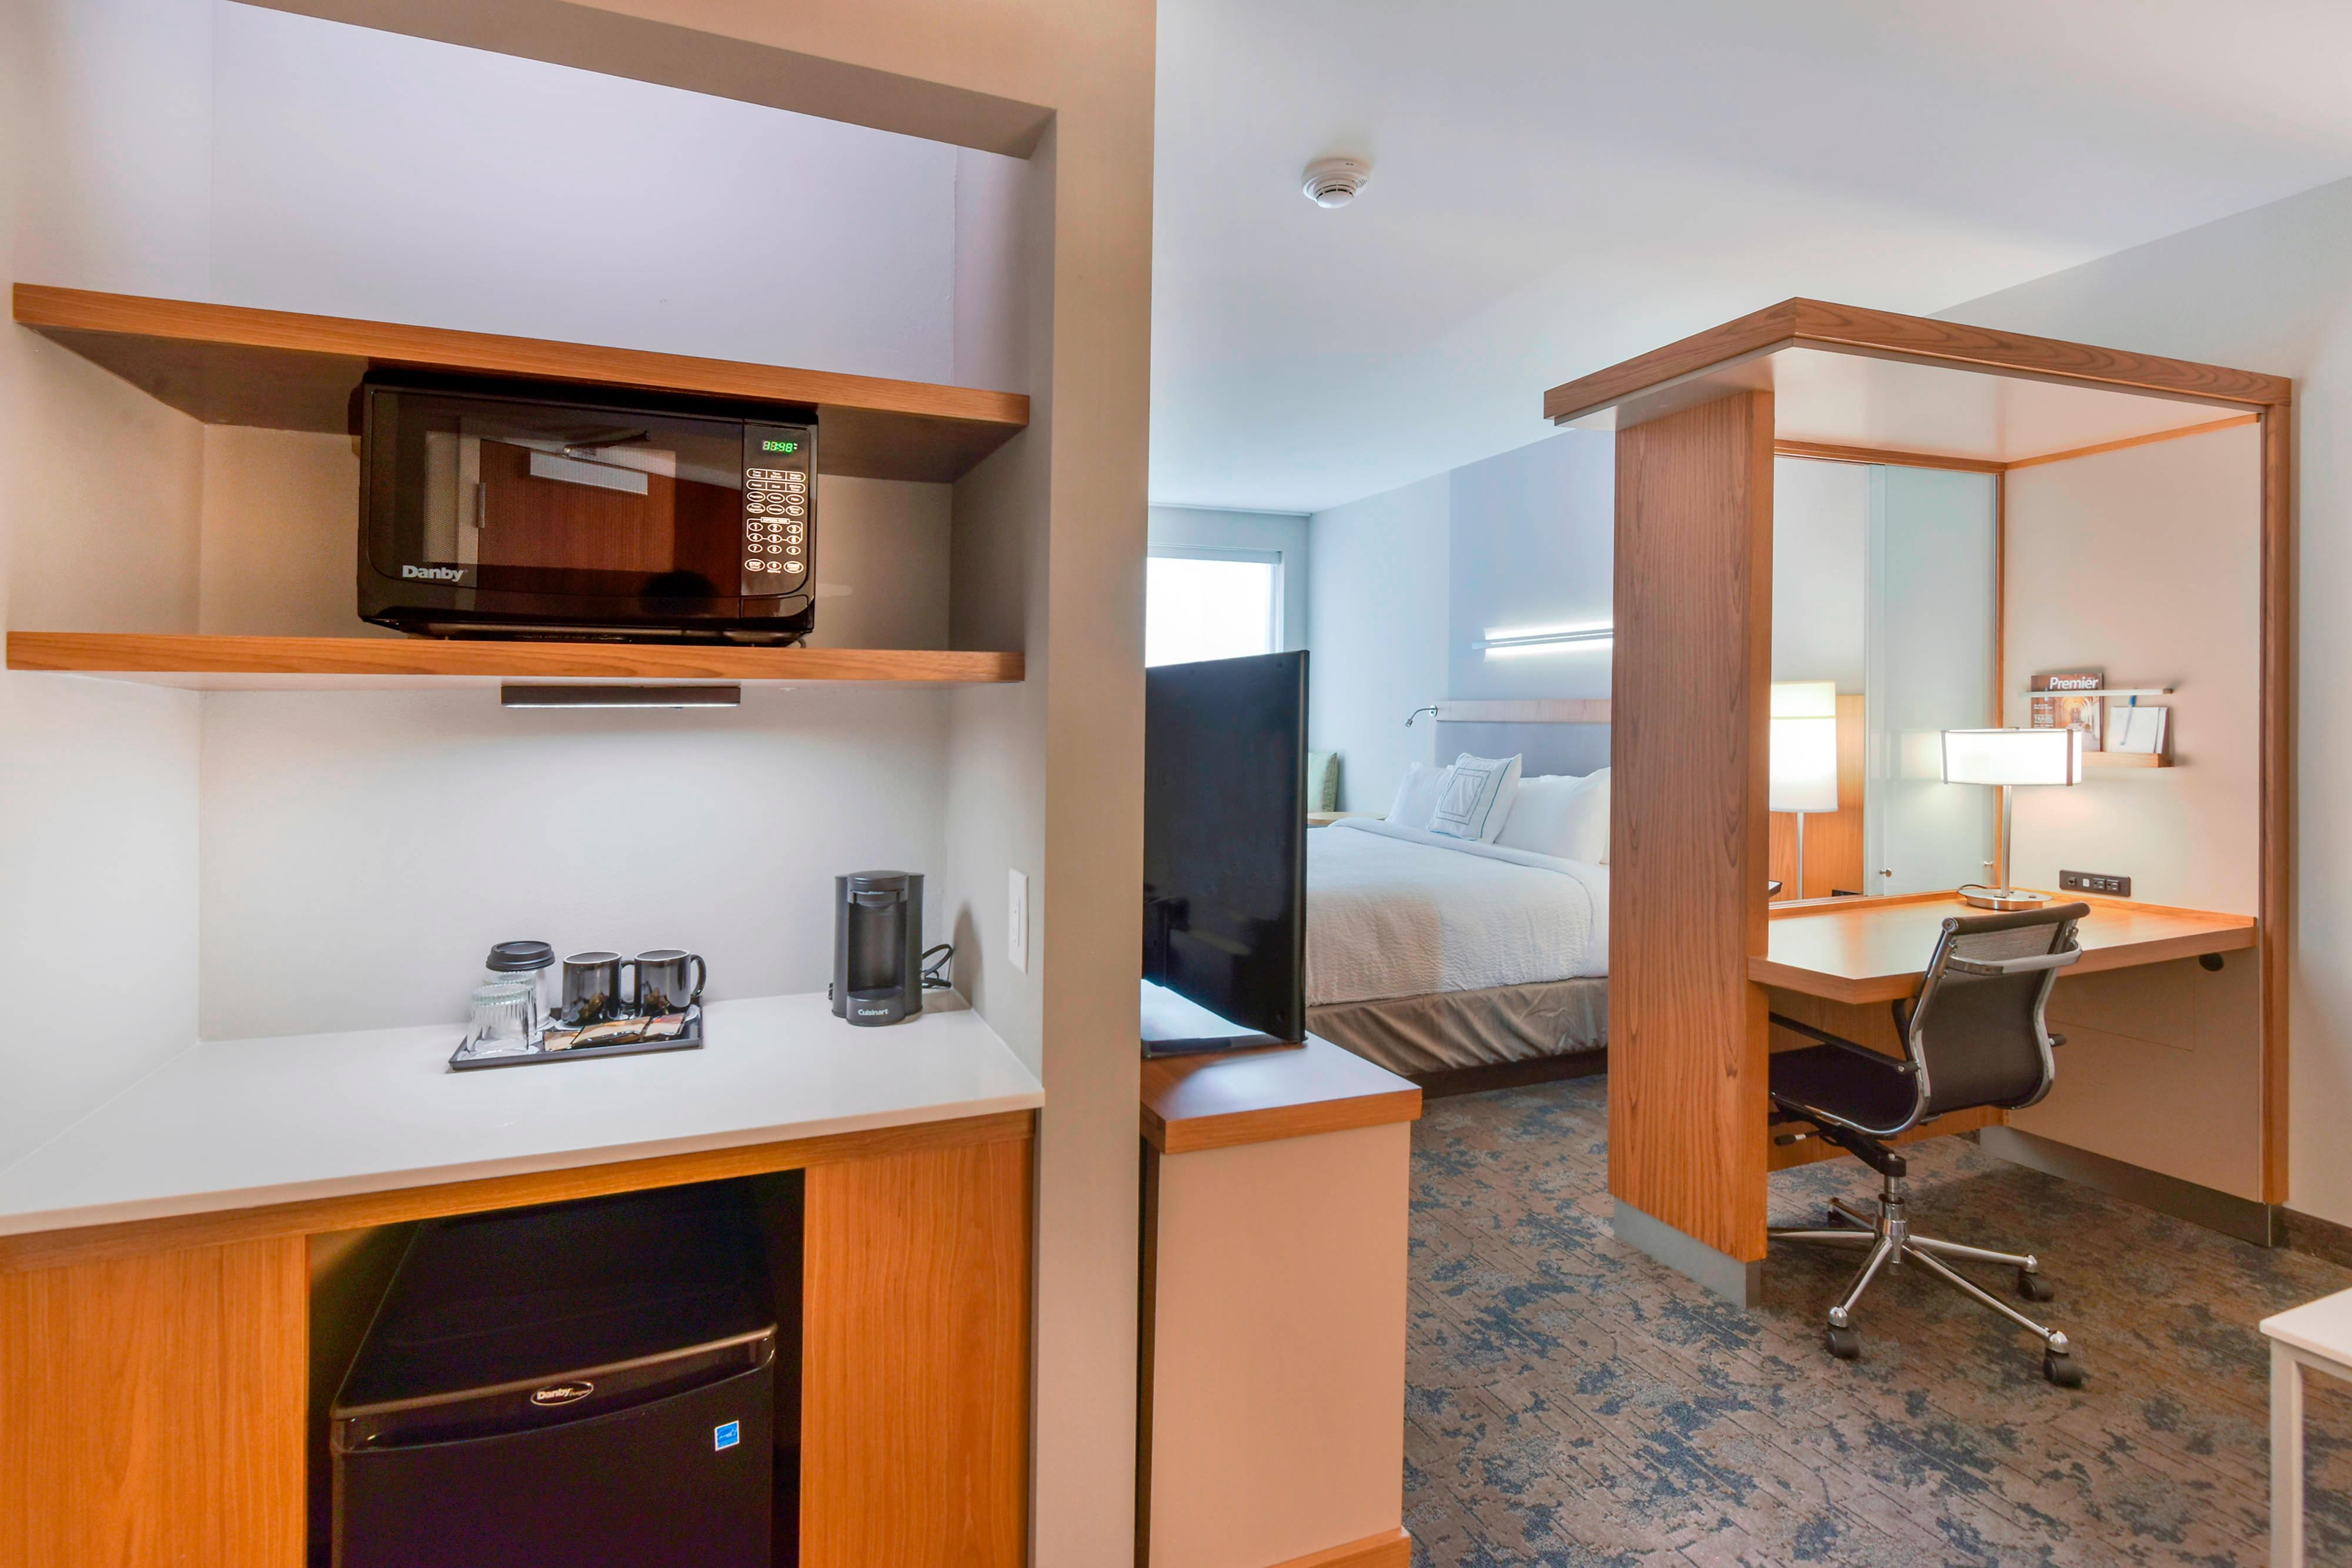 Suite Kitchenette Microwave, Mini-Fridge and Coffee Maker